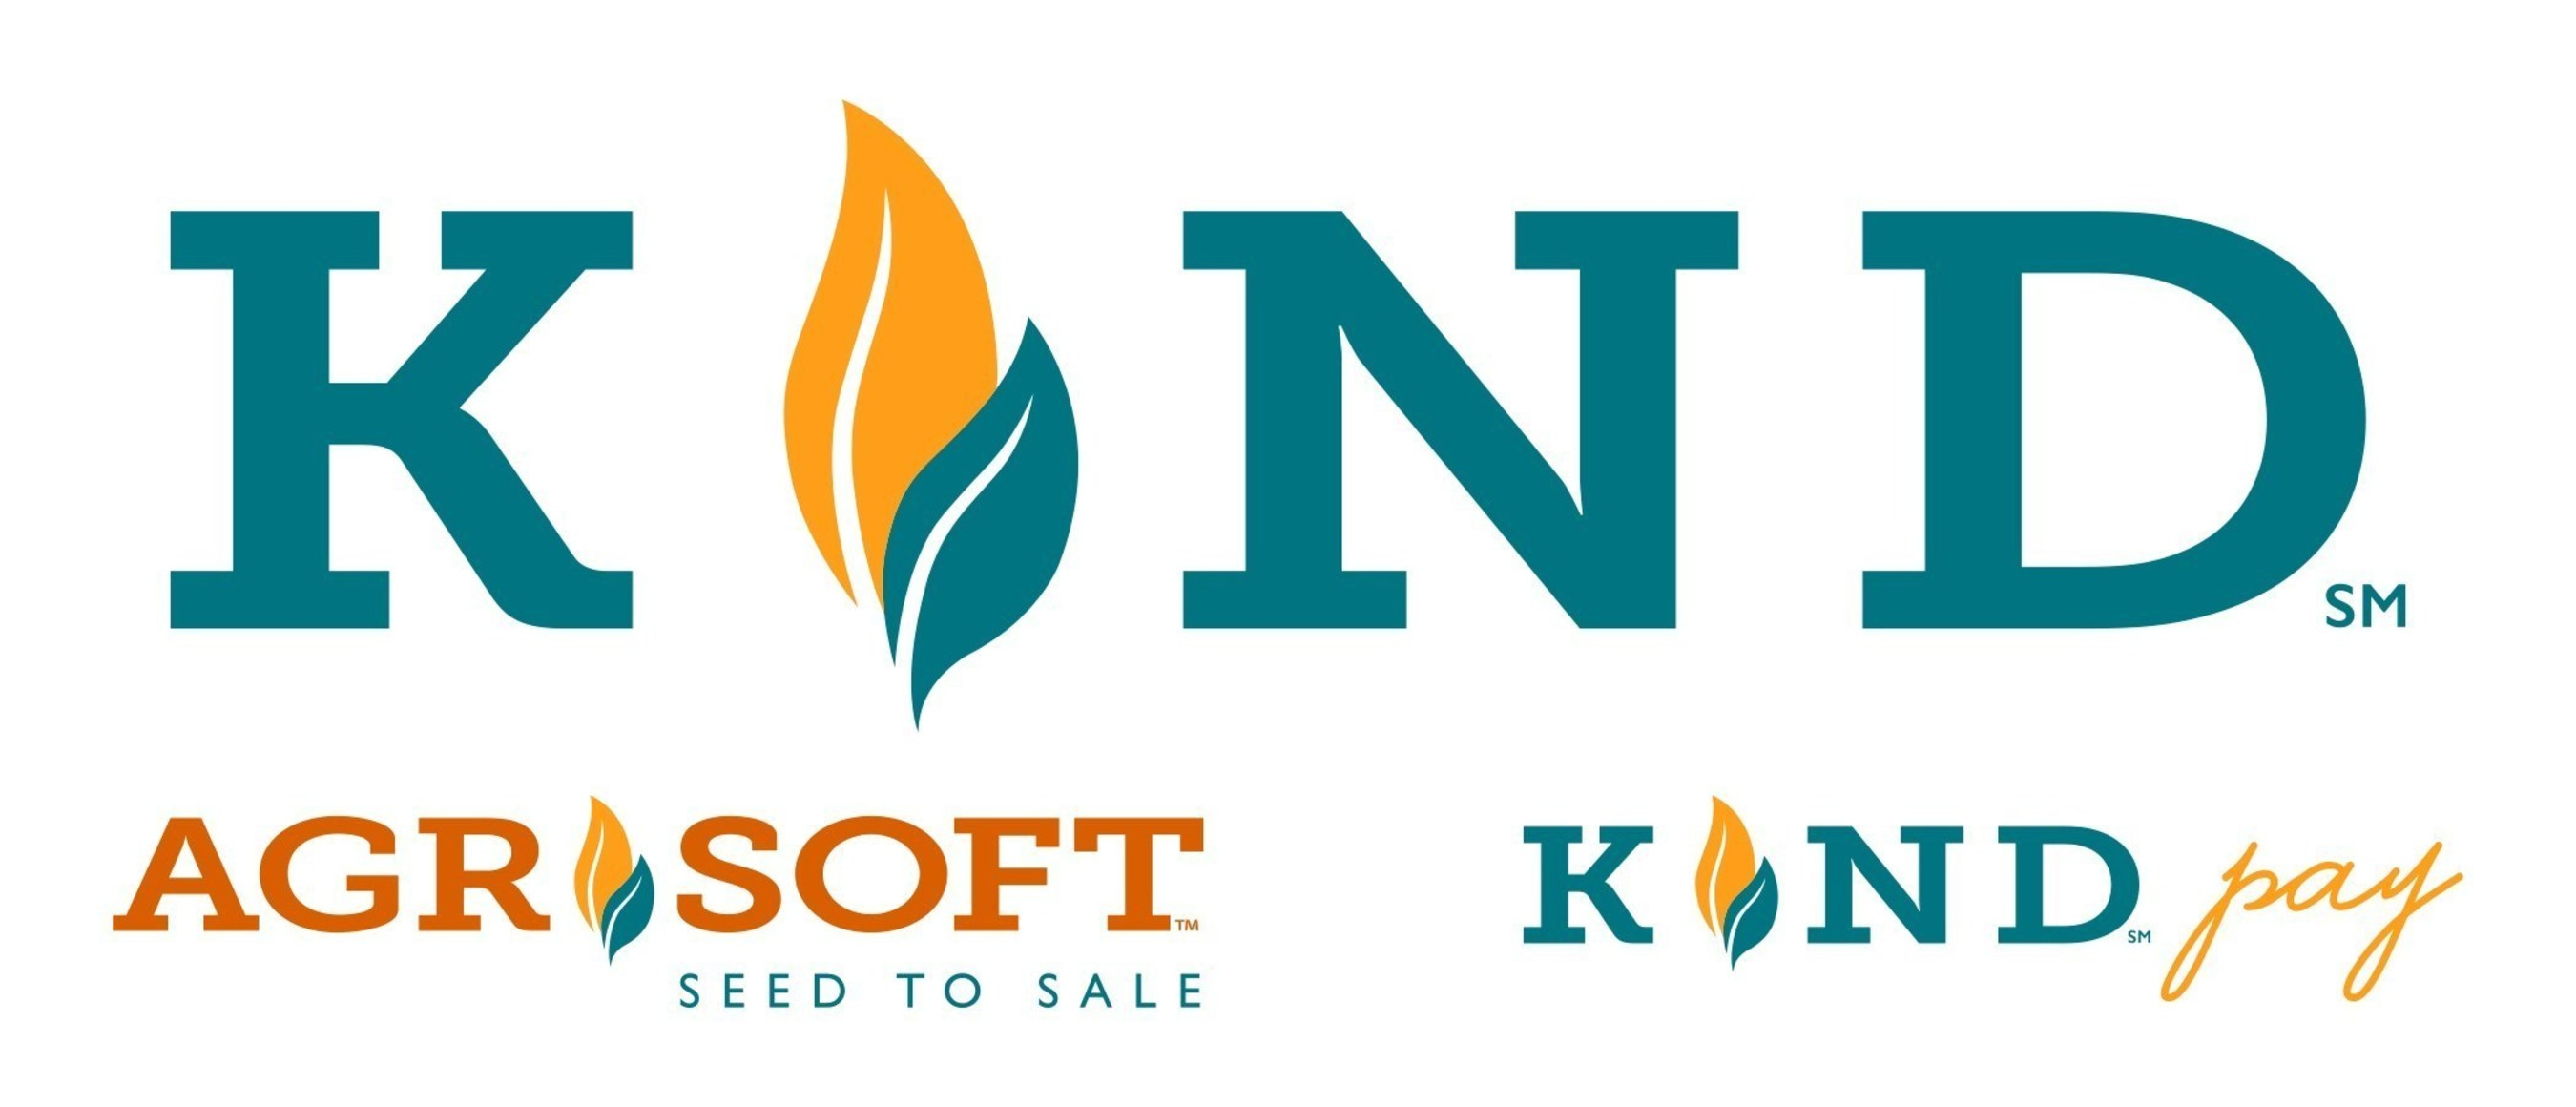 KIND Financial is the market leader in financial technology solutions for the cannabis industry, providing its customers - medical and recreational dispensaries, marijuana cultivators, and government regulatory agencies - with the tools they need to facilitate safe and secure transactions that are in compliance with the rules, regulations, laws and guidelines governing their businesses.   KIND's technology platform includes Agrisoft Seed to Sale for cannabis tracking, point-of-sale transactions, and managing the organization along with KIND Pay, a cash-free mobile payment and customer loyalty solution for cannabis businesses.